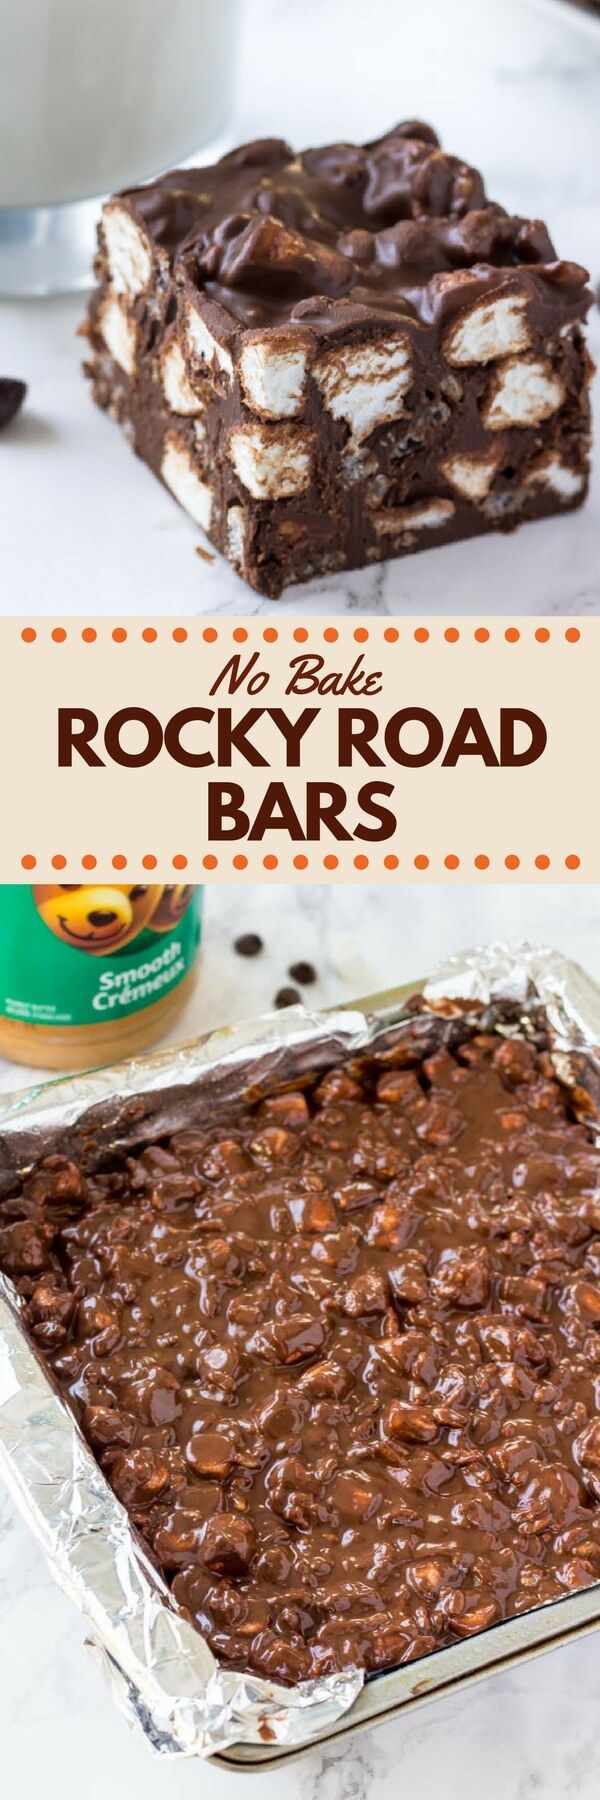 These No Bake Rocky Road Squares are the perfect easy recipe if you love peanut butter and chocolate. With only 5 ingredients - they're crispy, crunchy & gooey thanks to using Rice Krispie cereal and mini marshmallows.#nobake #rockyroadsquares #peanutbutterchocolate #rockyroad